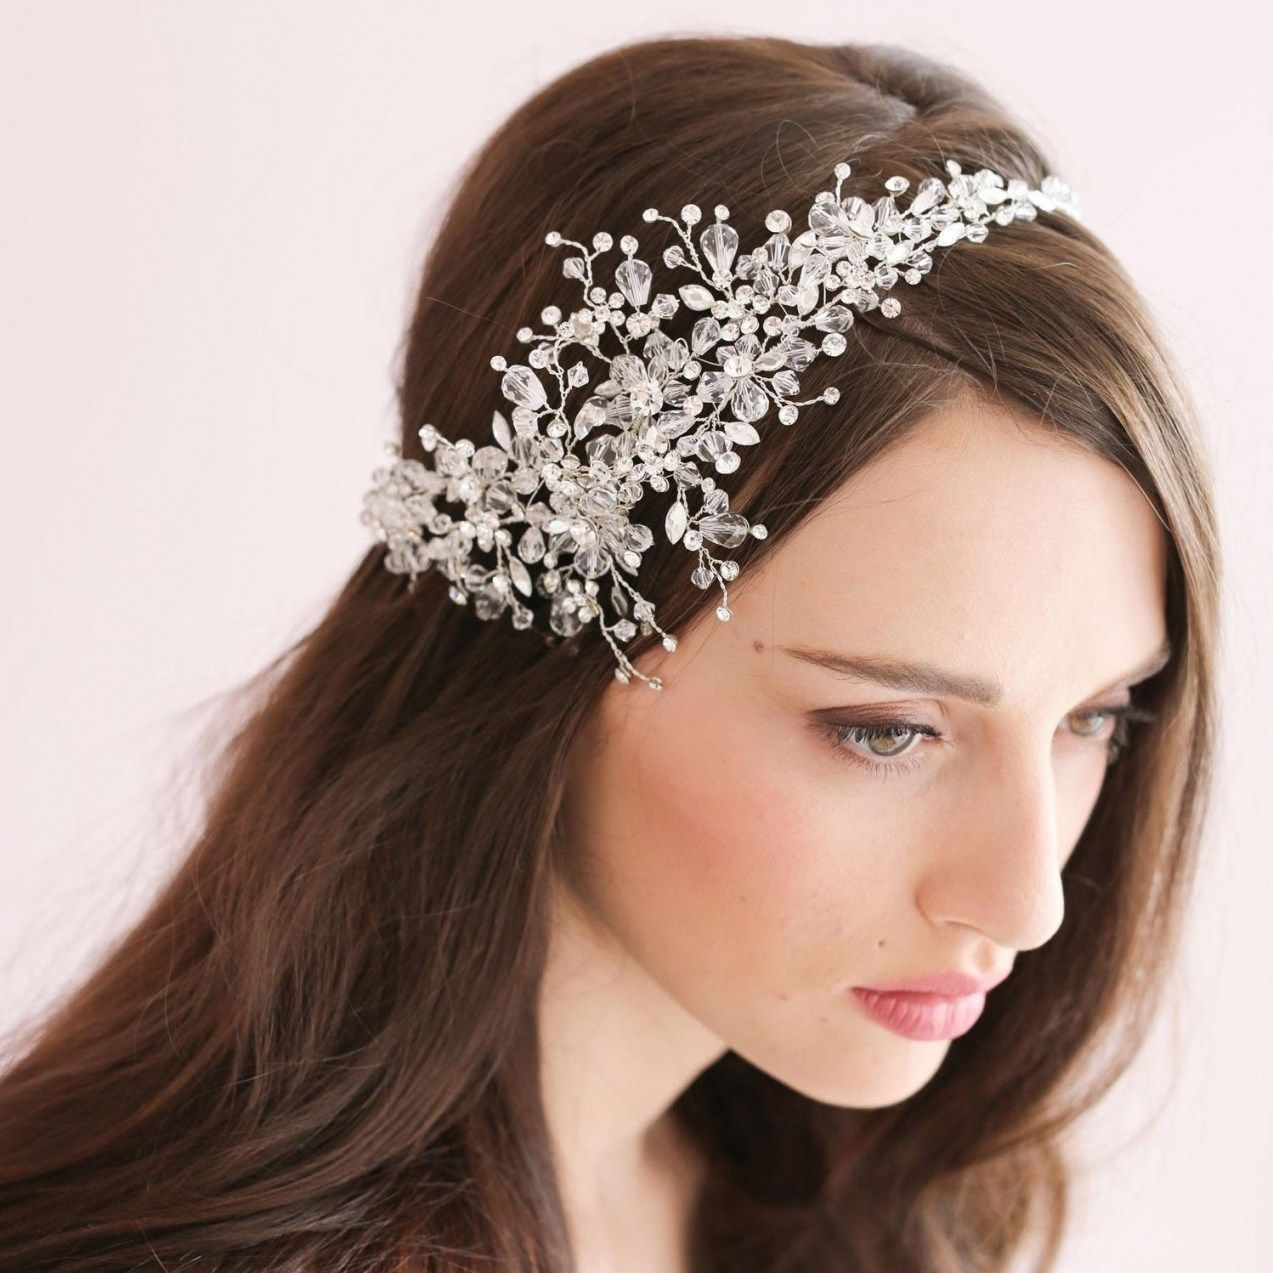 wedding hair accessories online shop | hairstyles ideas for me